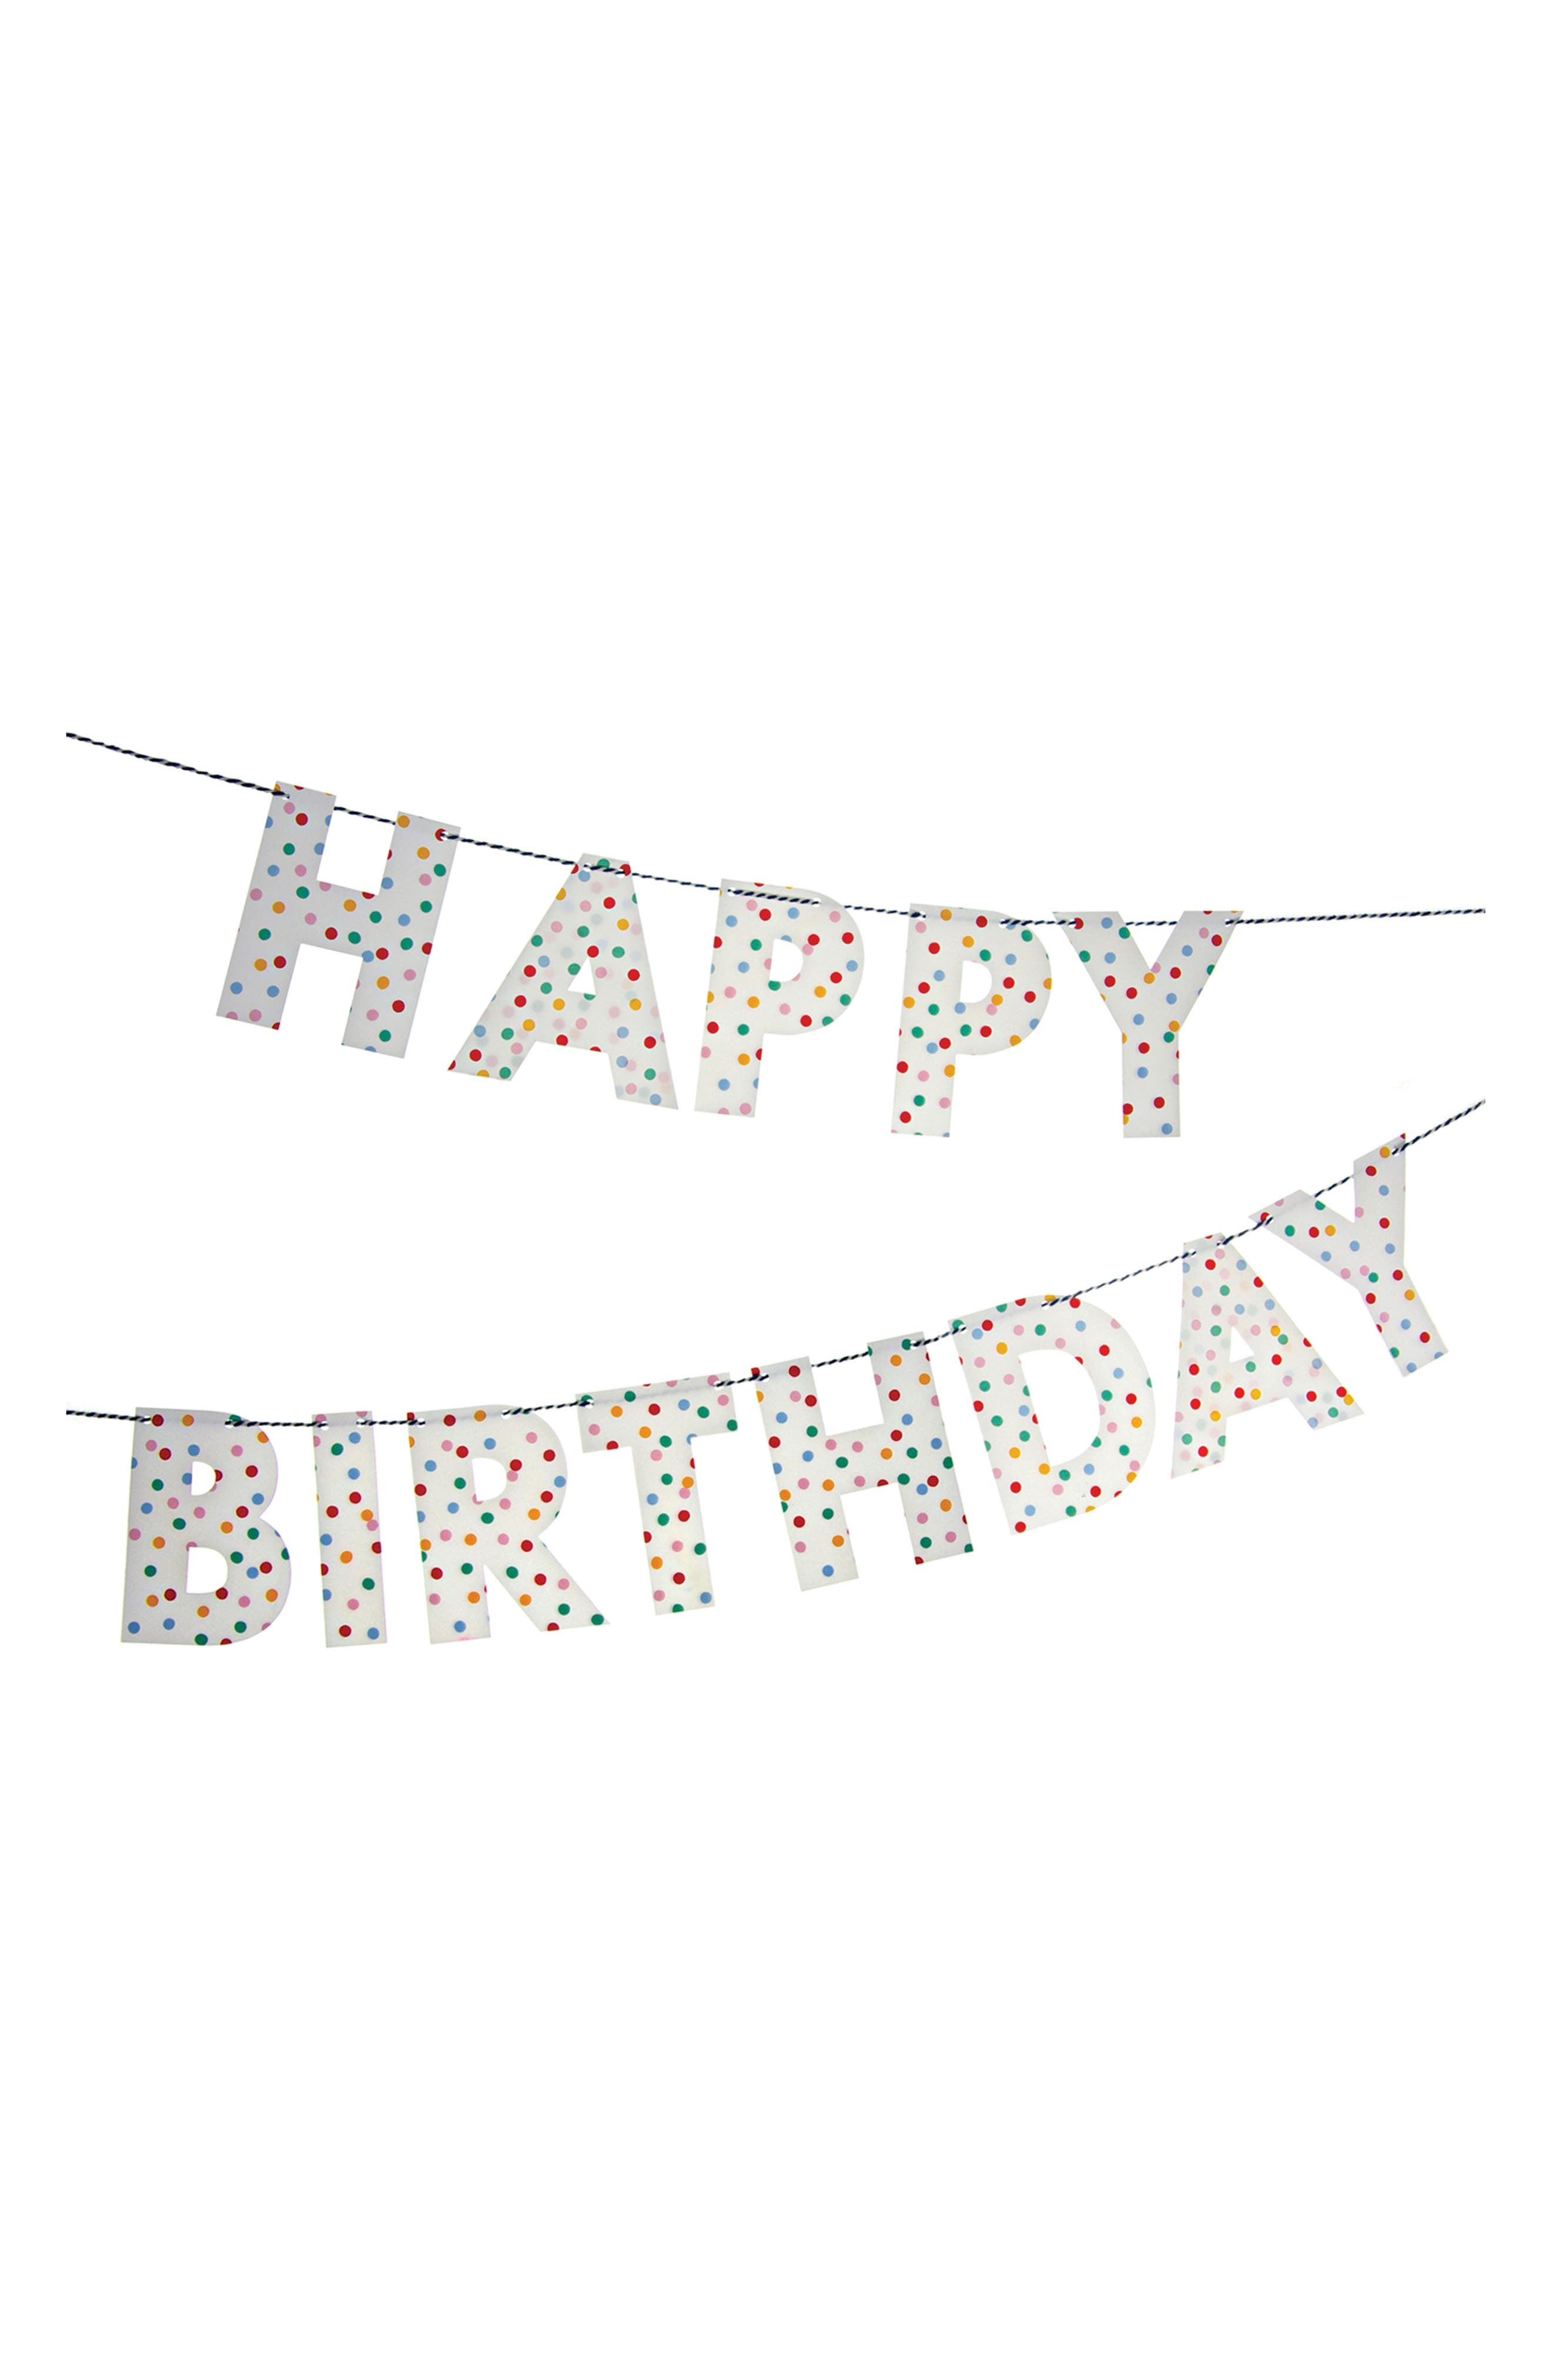 Toot Sweet - Spotty Happy Birthday Garland,                             Main thumbnail 1, color,                             400